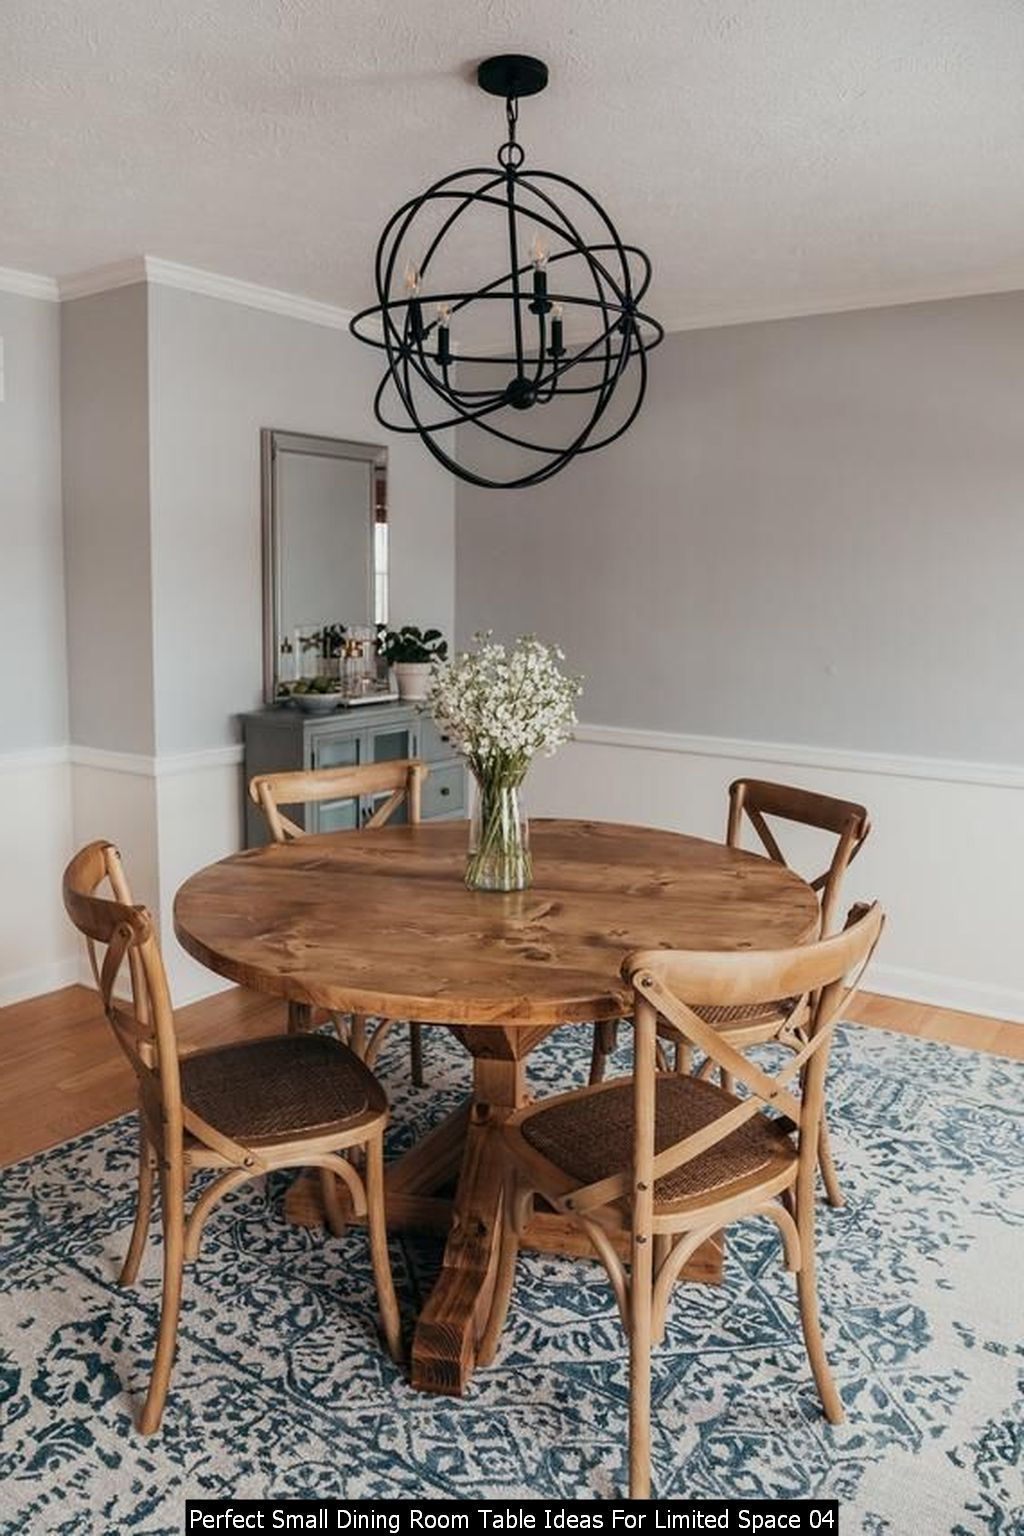 30 Perfect Small Dining Room Table Ideas For Limited Space Small Dining Room Table Dining Room Small Dining Room Table Decor